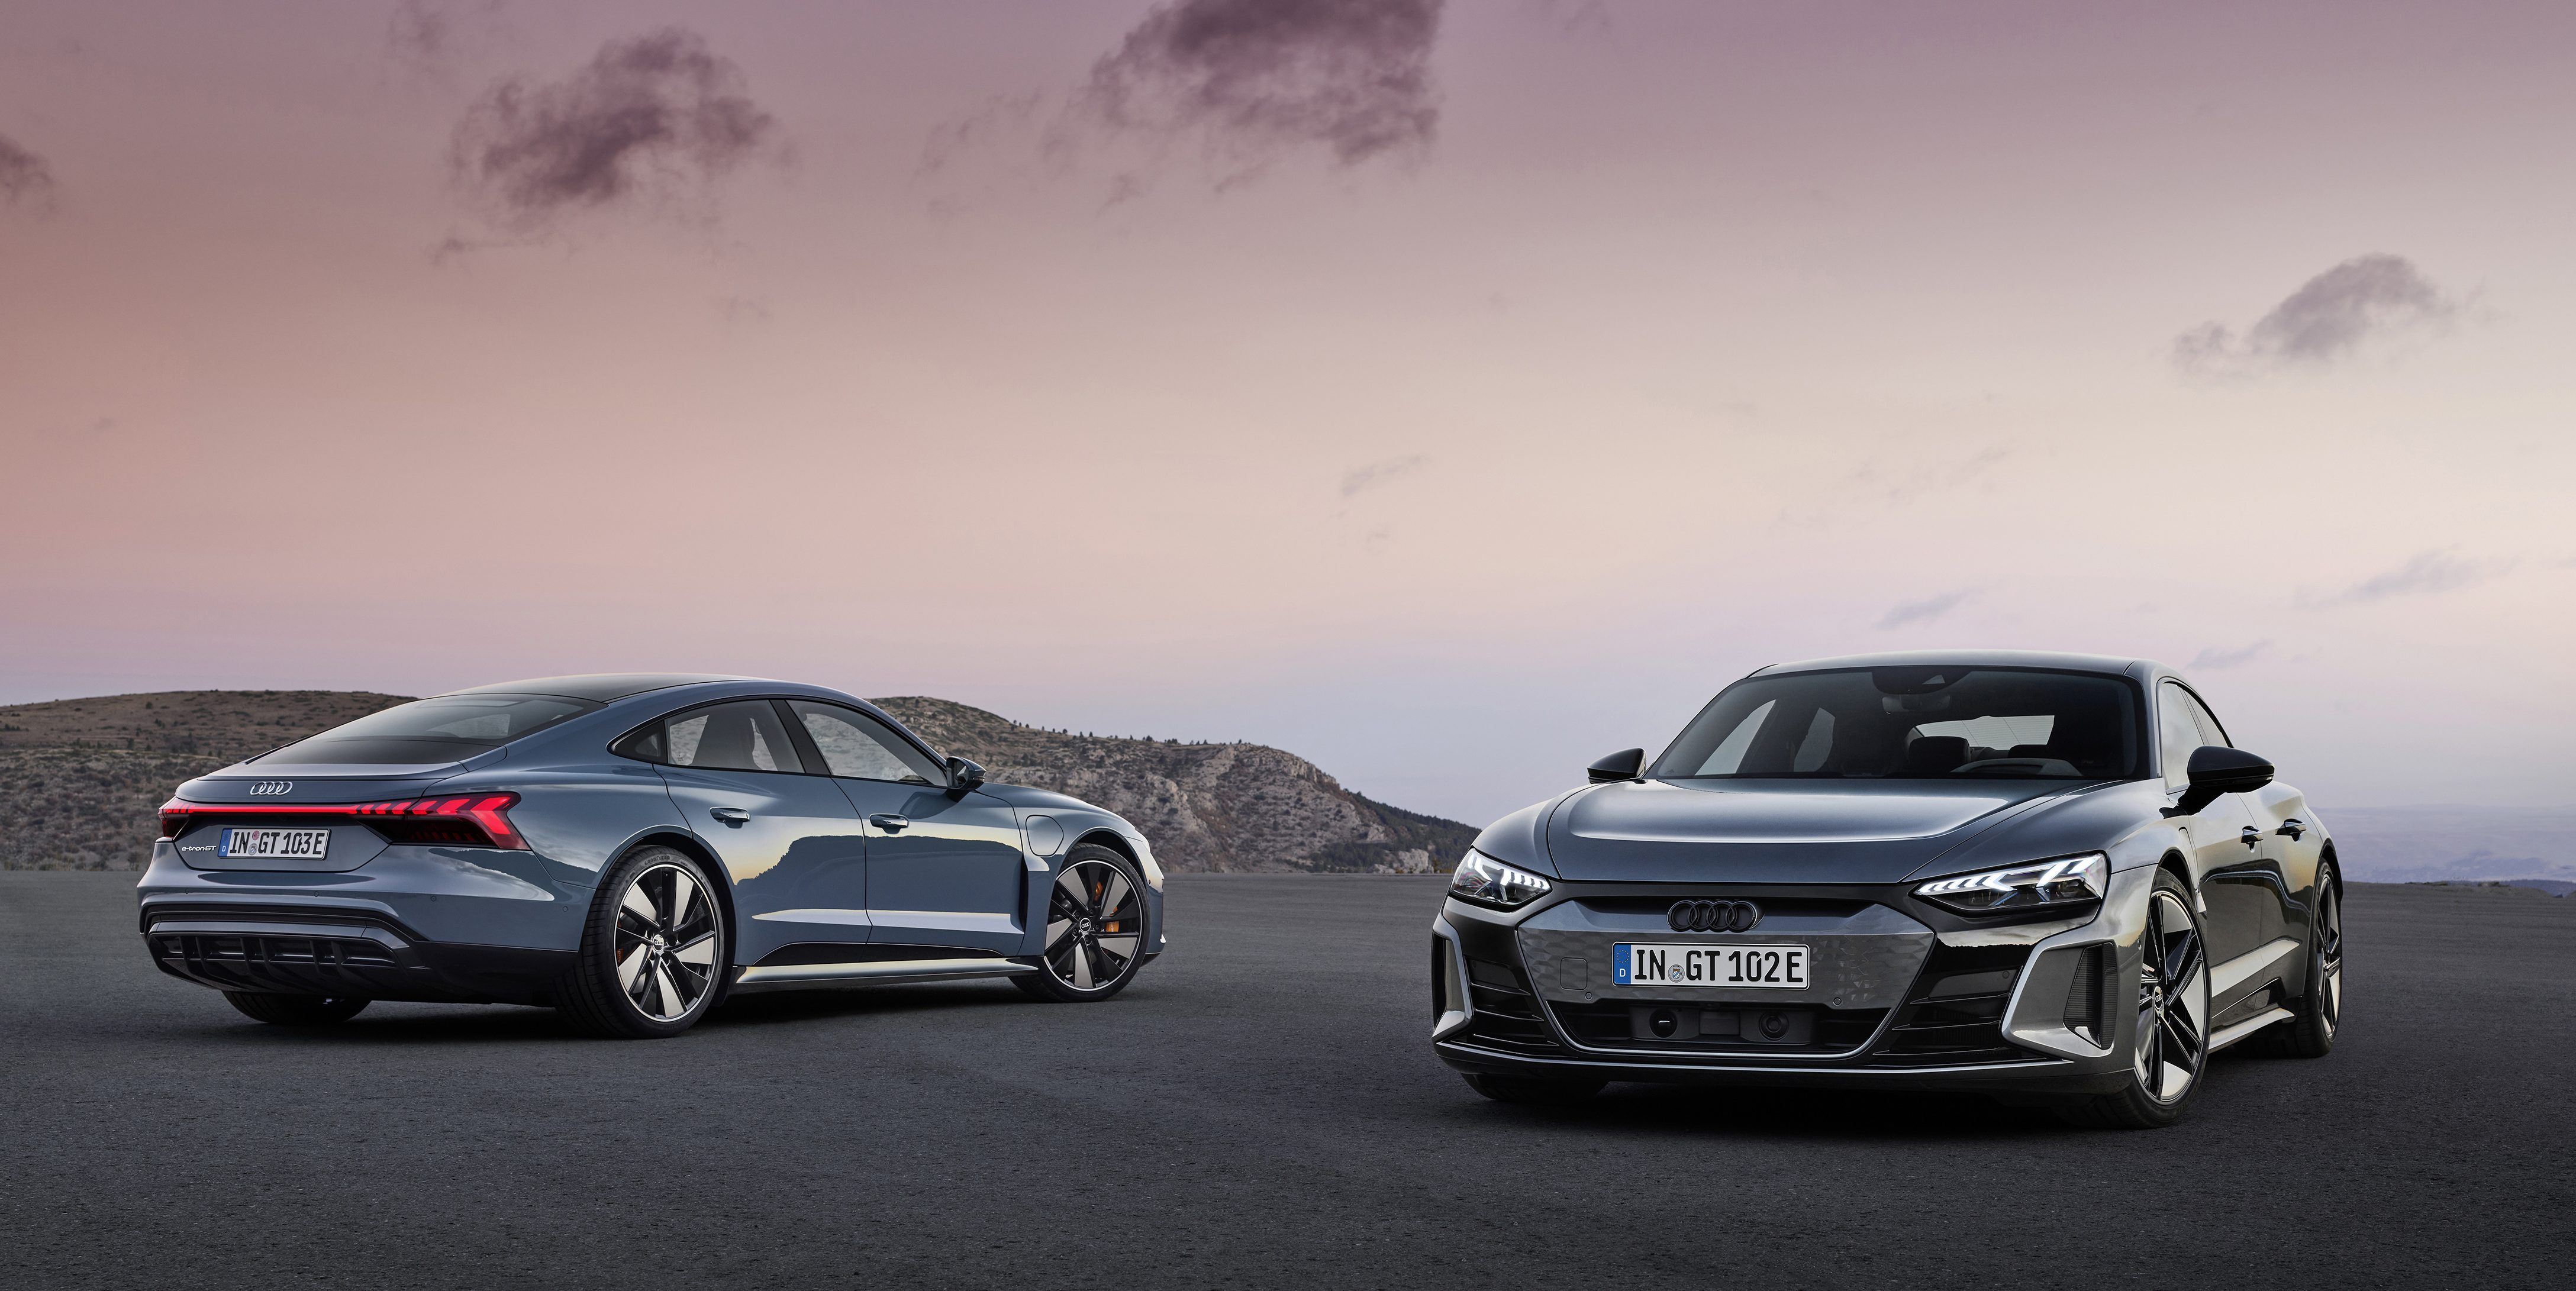 10 Coolest New Car Namplates Launched In 2021 | HotCars